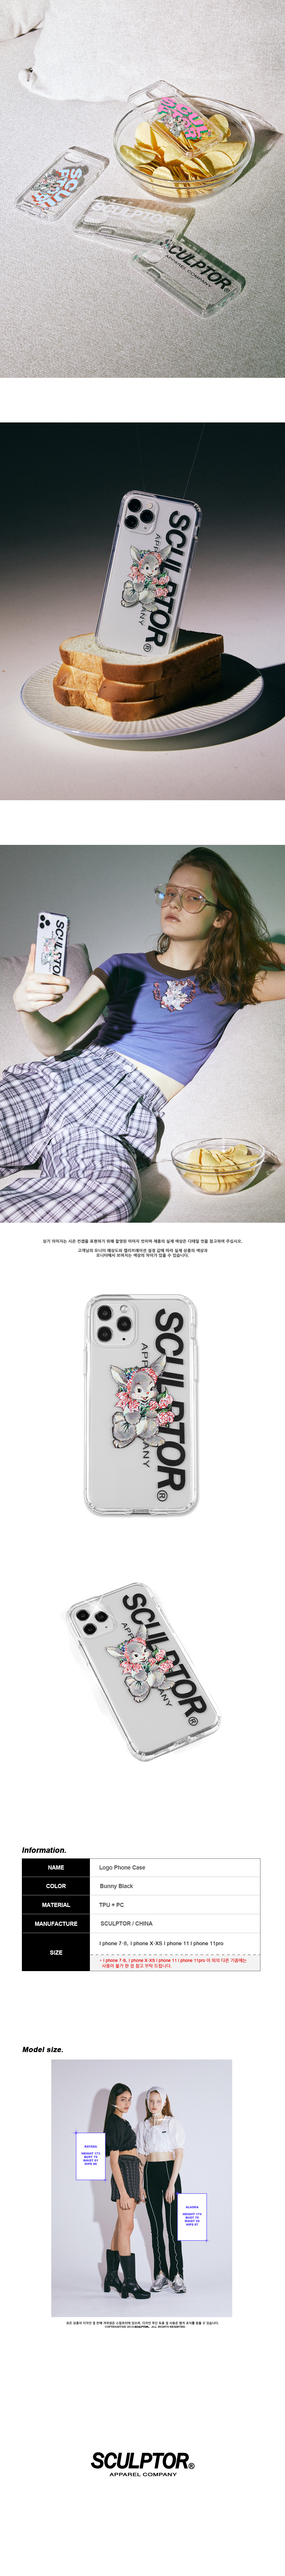 스컬프터(SCULPTOR) Logo Phone Case [BUNNY/BLACK]